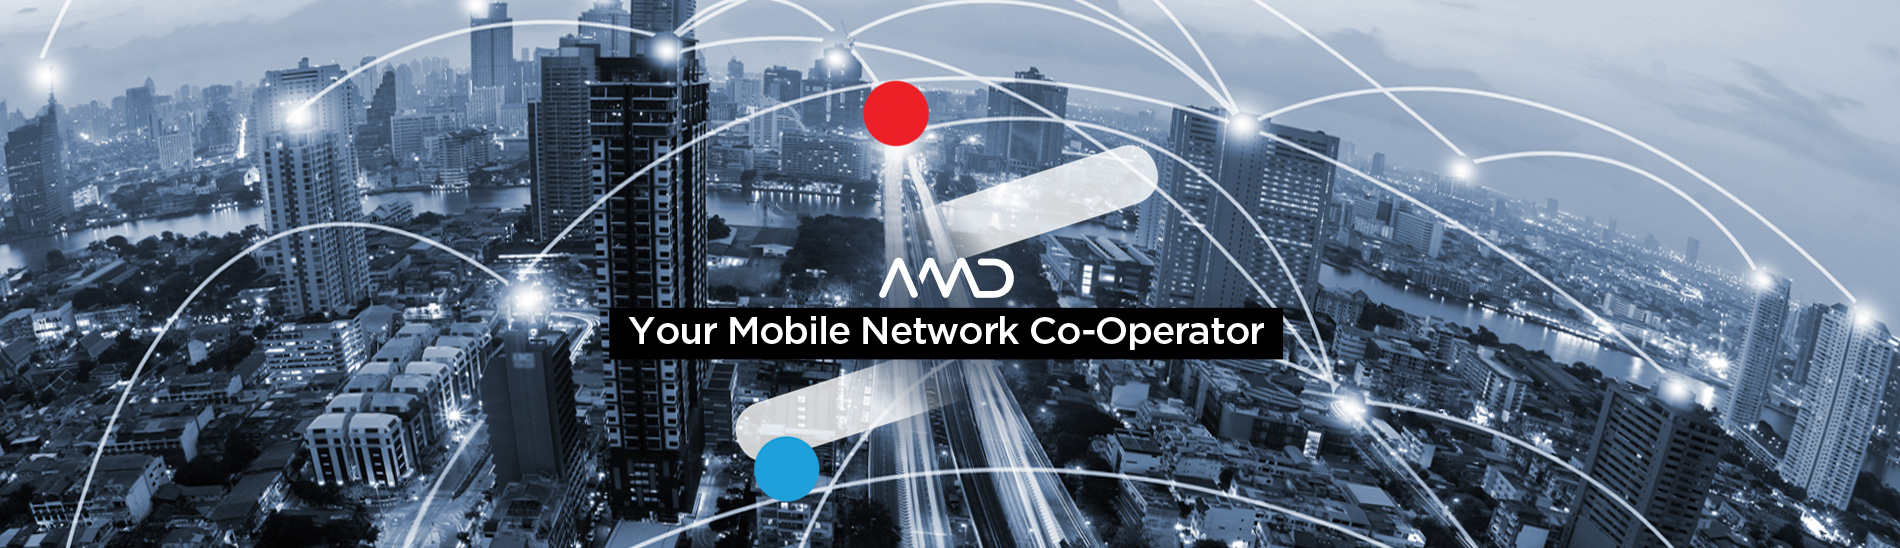 AMD Telecom S A  - Your Mobile Network Co-Operator -Homepage